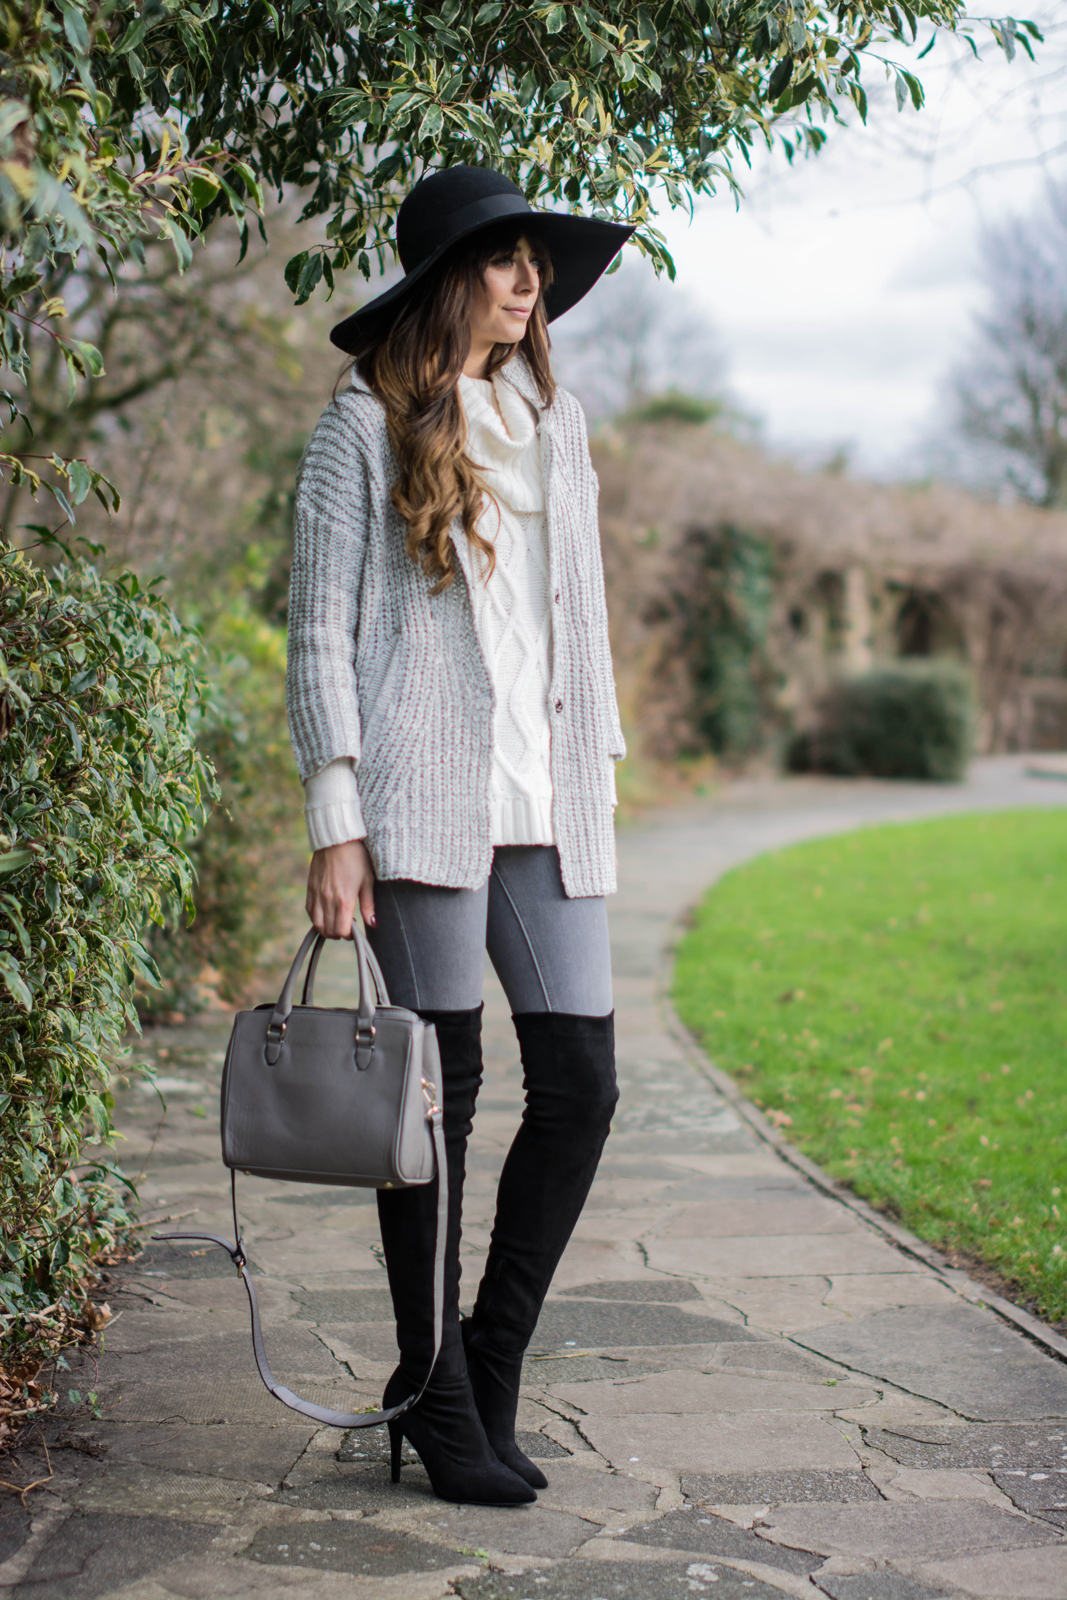 EJSTYLE - Topshop Floppy felt hat, Lookbook store cardigan knit, forever 21 cream cowl neck sweater jumper, Next OTK boots, Grey skinny jeans, Grey zara mini city bag OOTD winter outfit